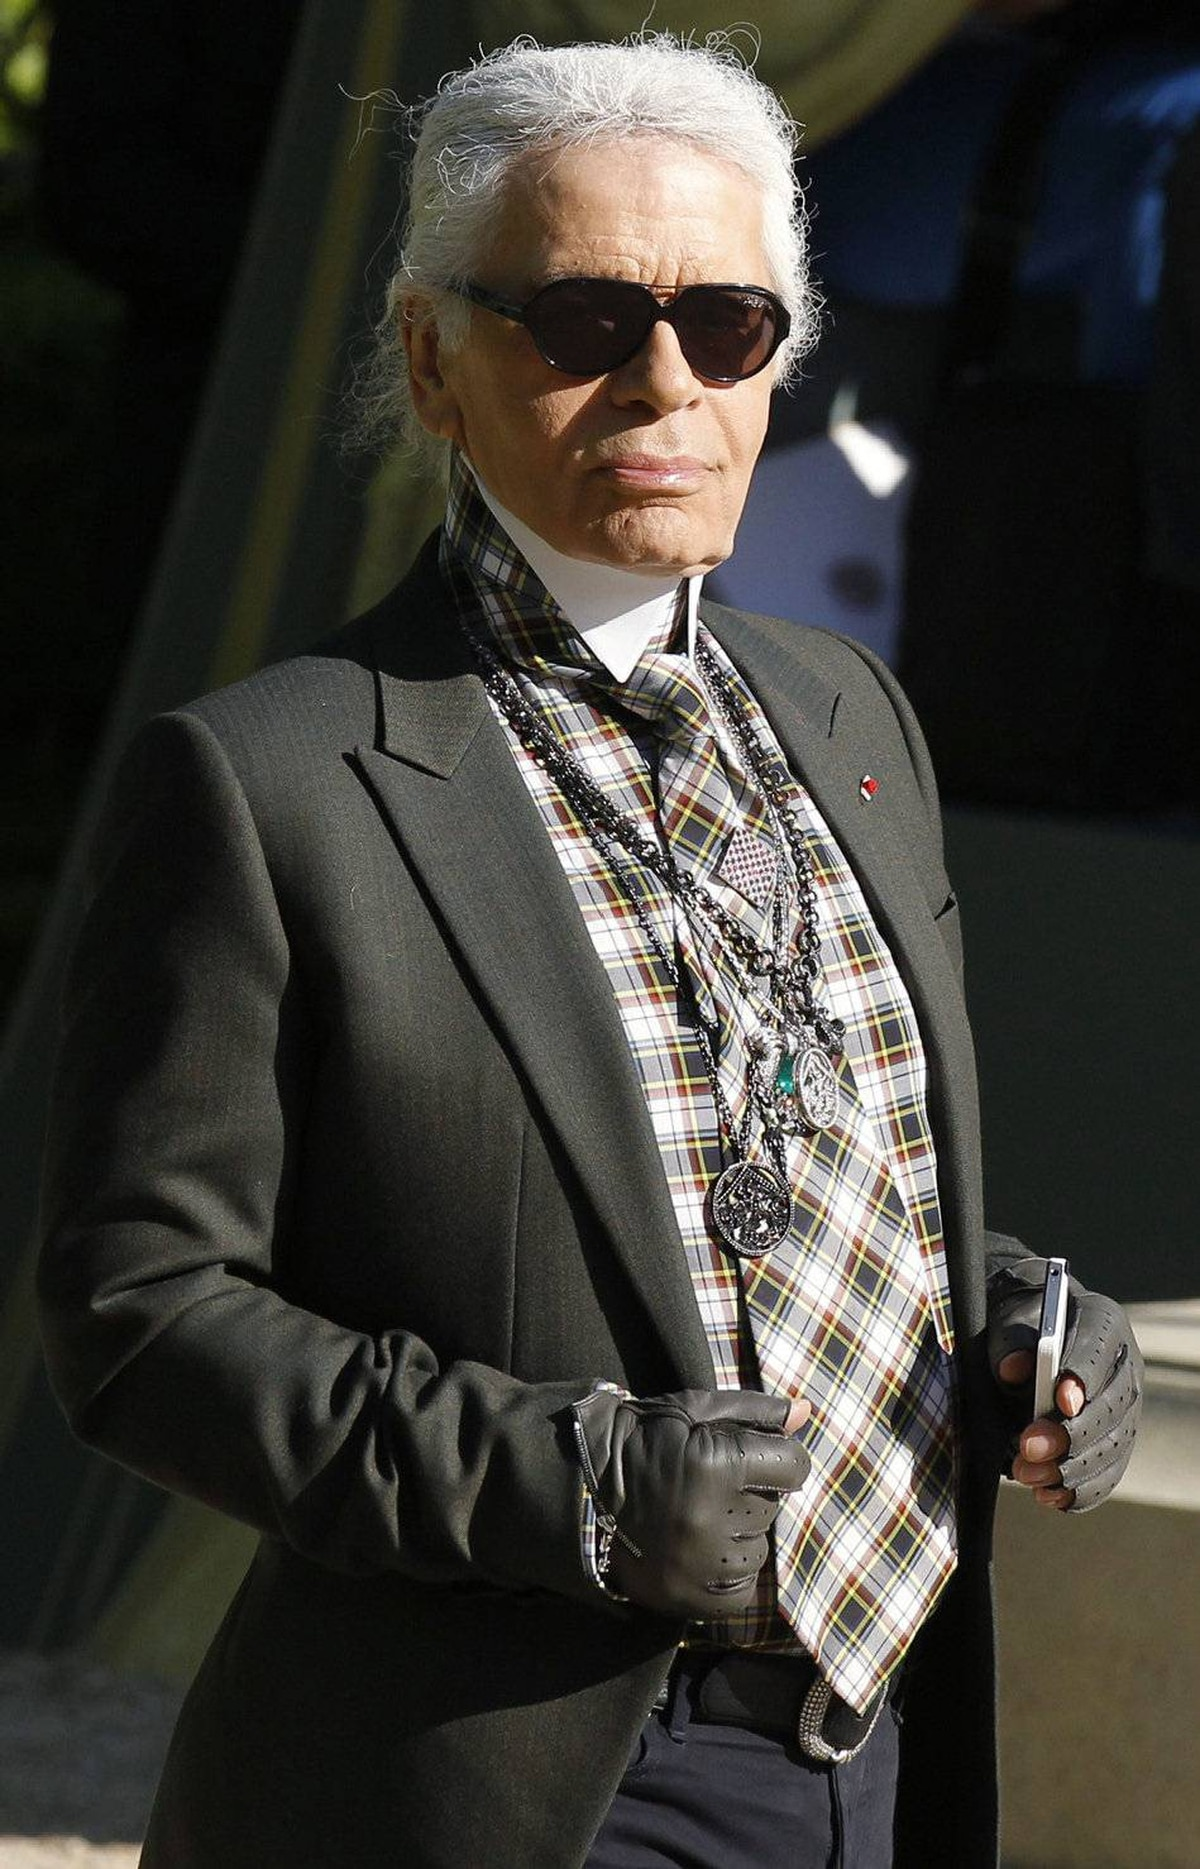 Karl Lagerfeld in full-on cruise control. His reign continues.